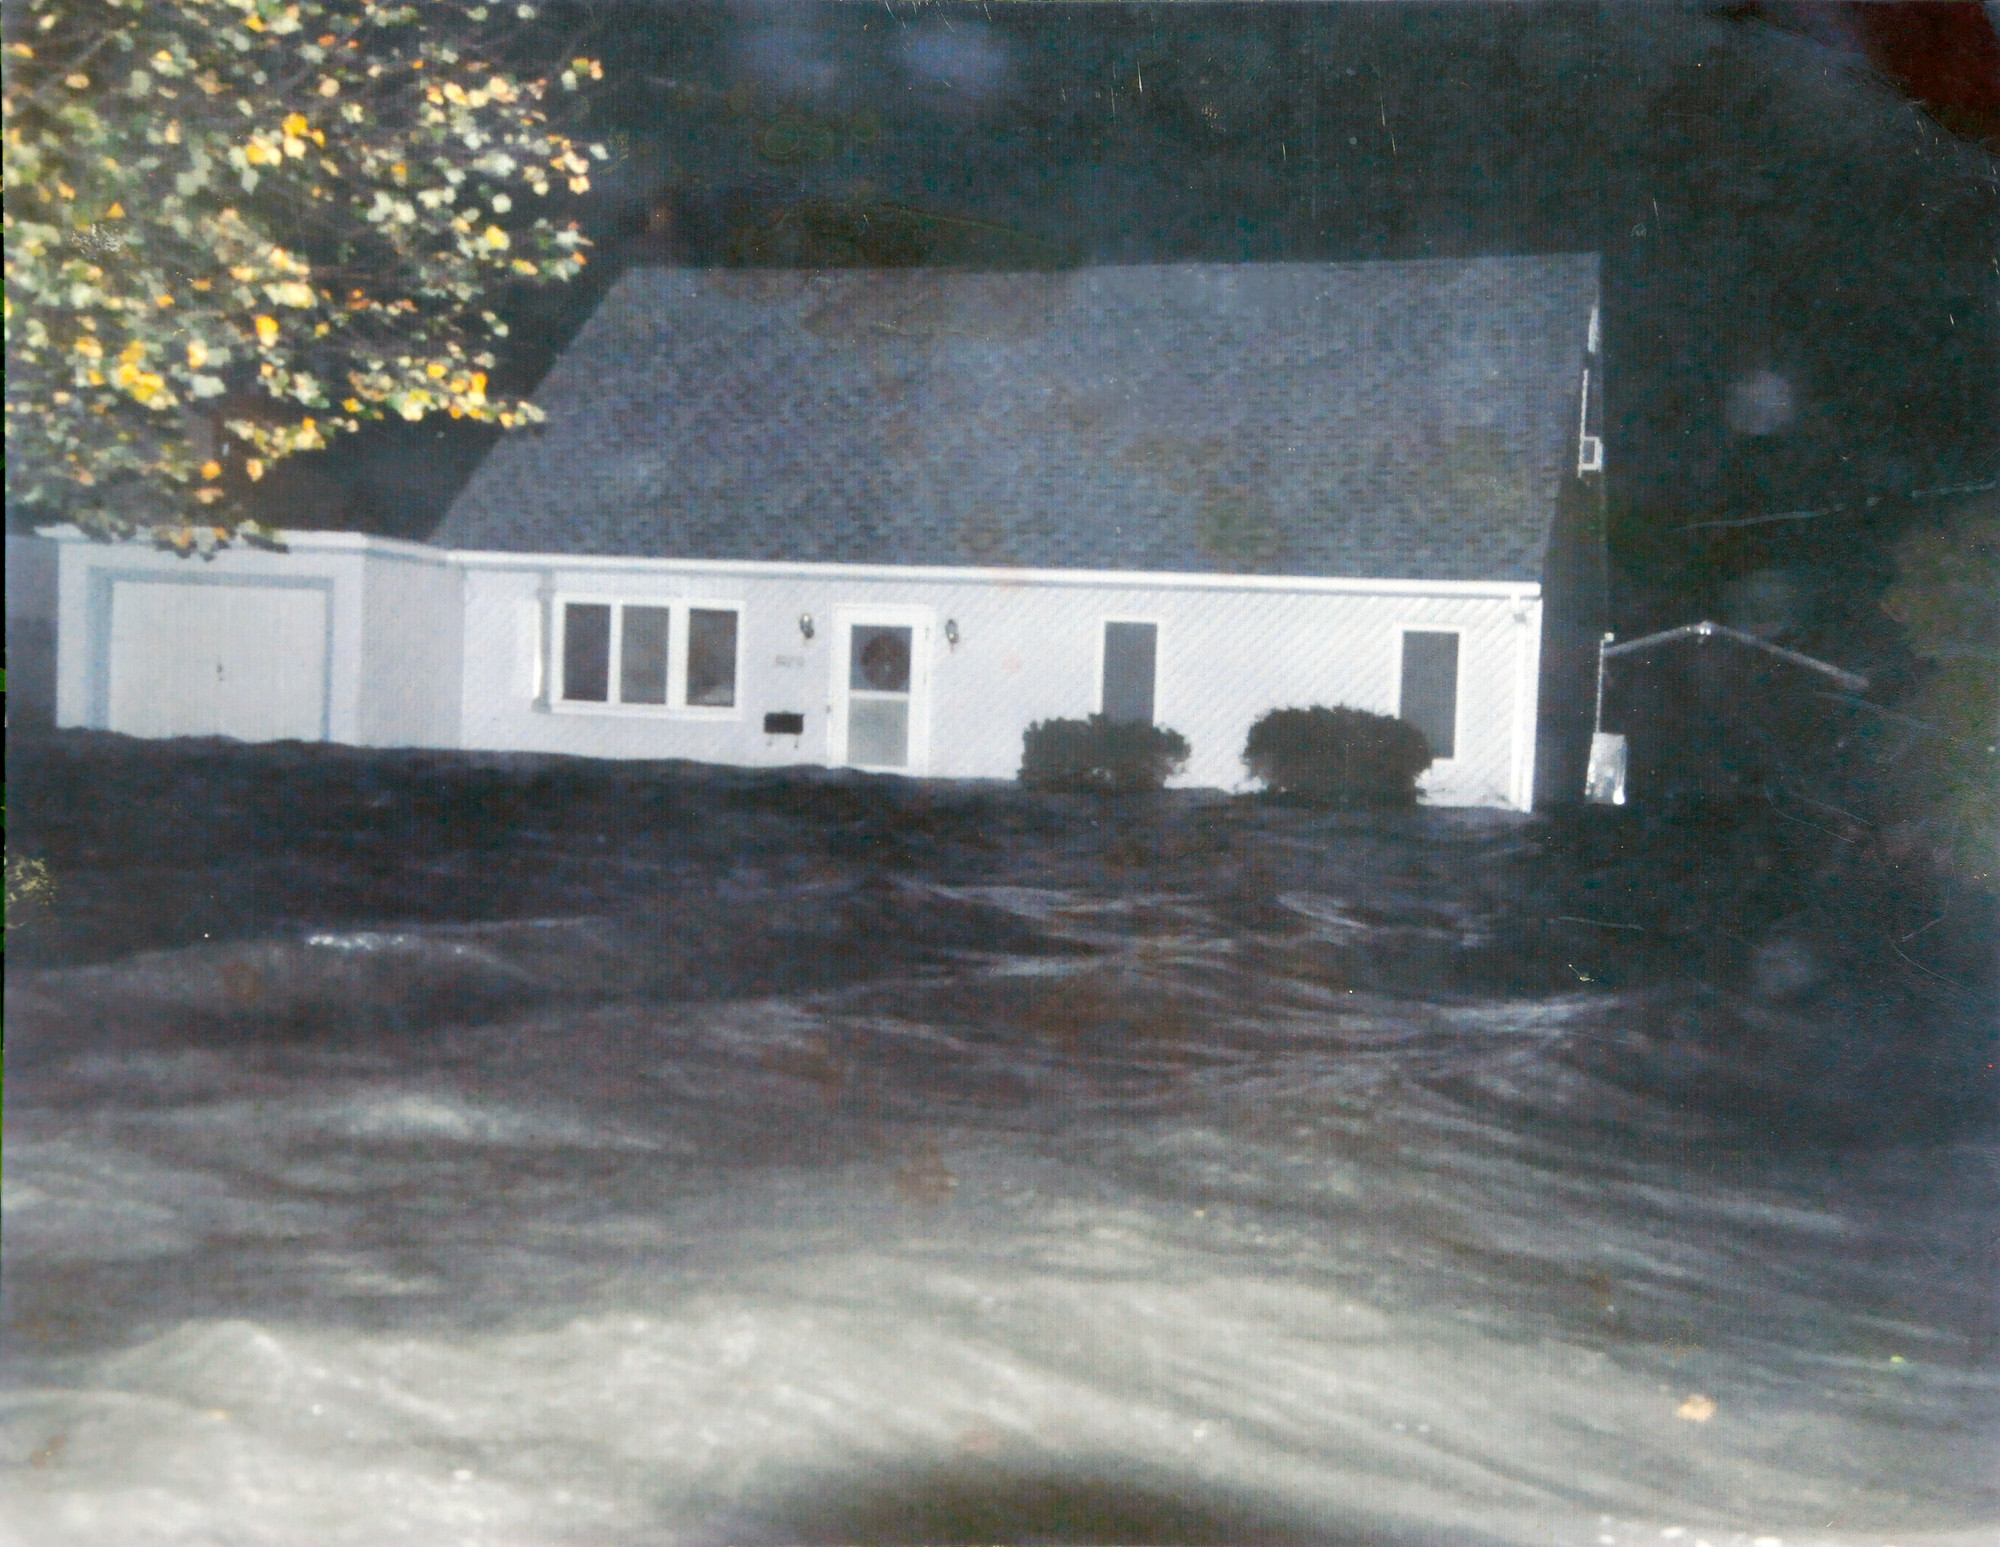 A friend took this photo of the Cesare house during Sandy. The water eventually came up to the windows.